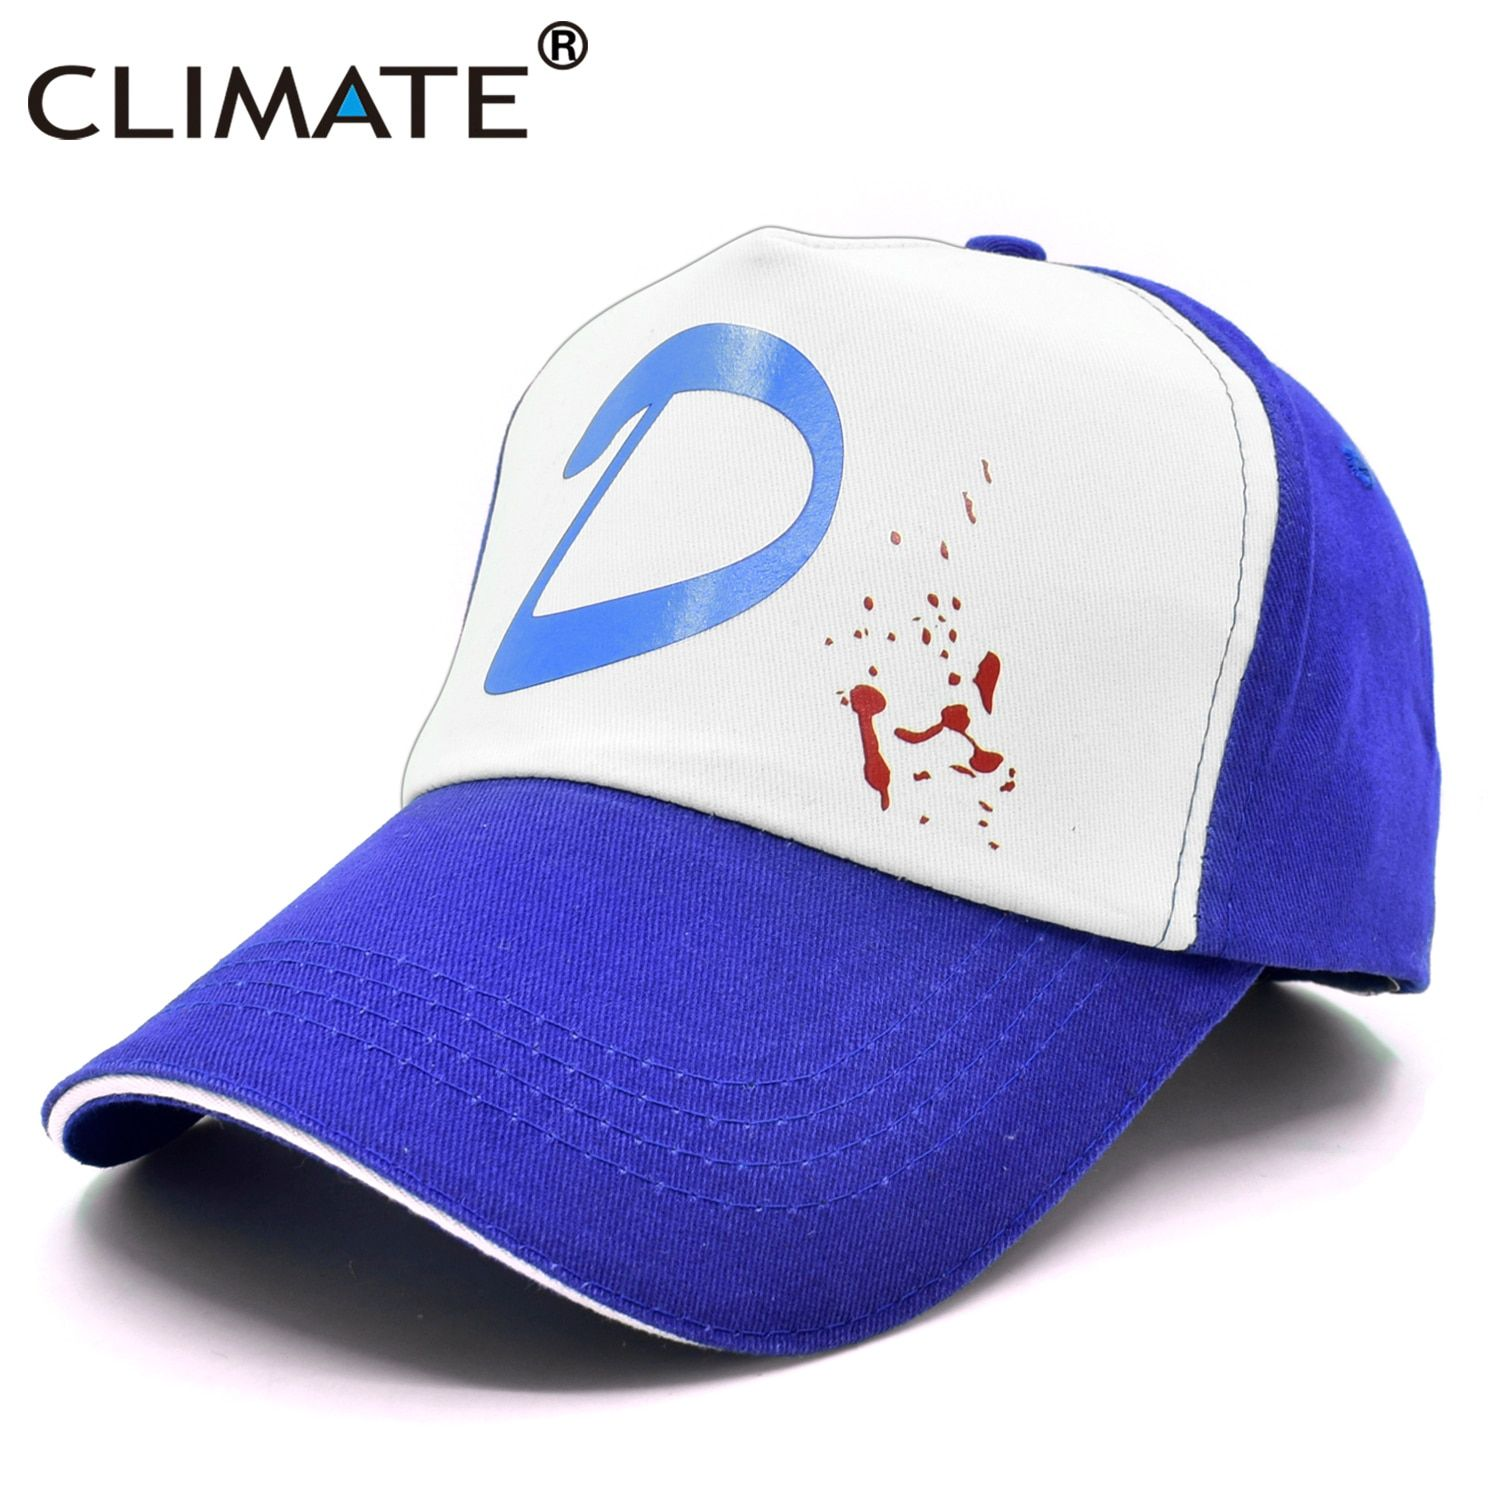 CLIMATE Clementine The Walking Dead Game Cap Clementine Hat Cap Clem's Cosplay Trucker Cap Girl Coser Zombie Killer Cool Caps